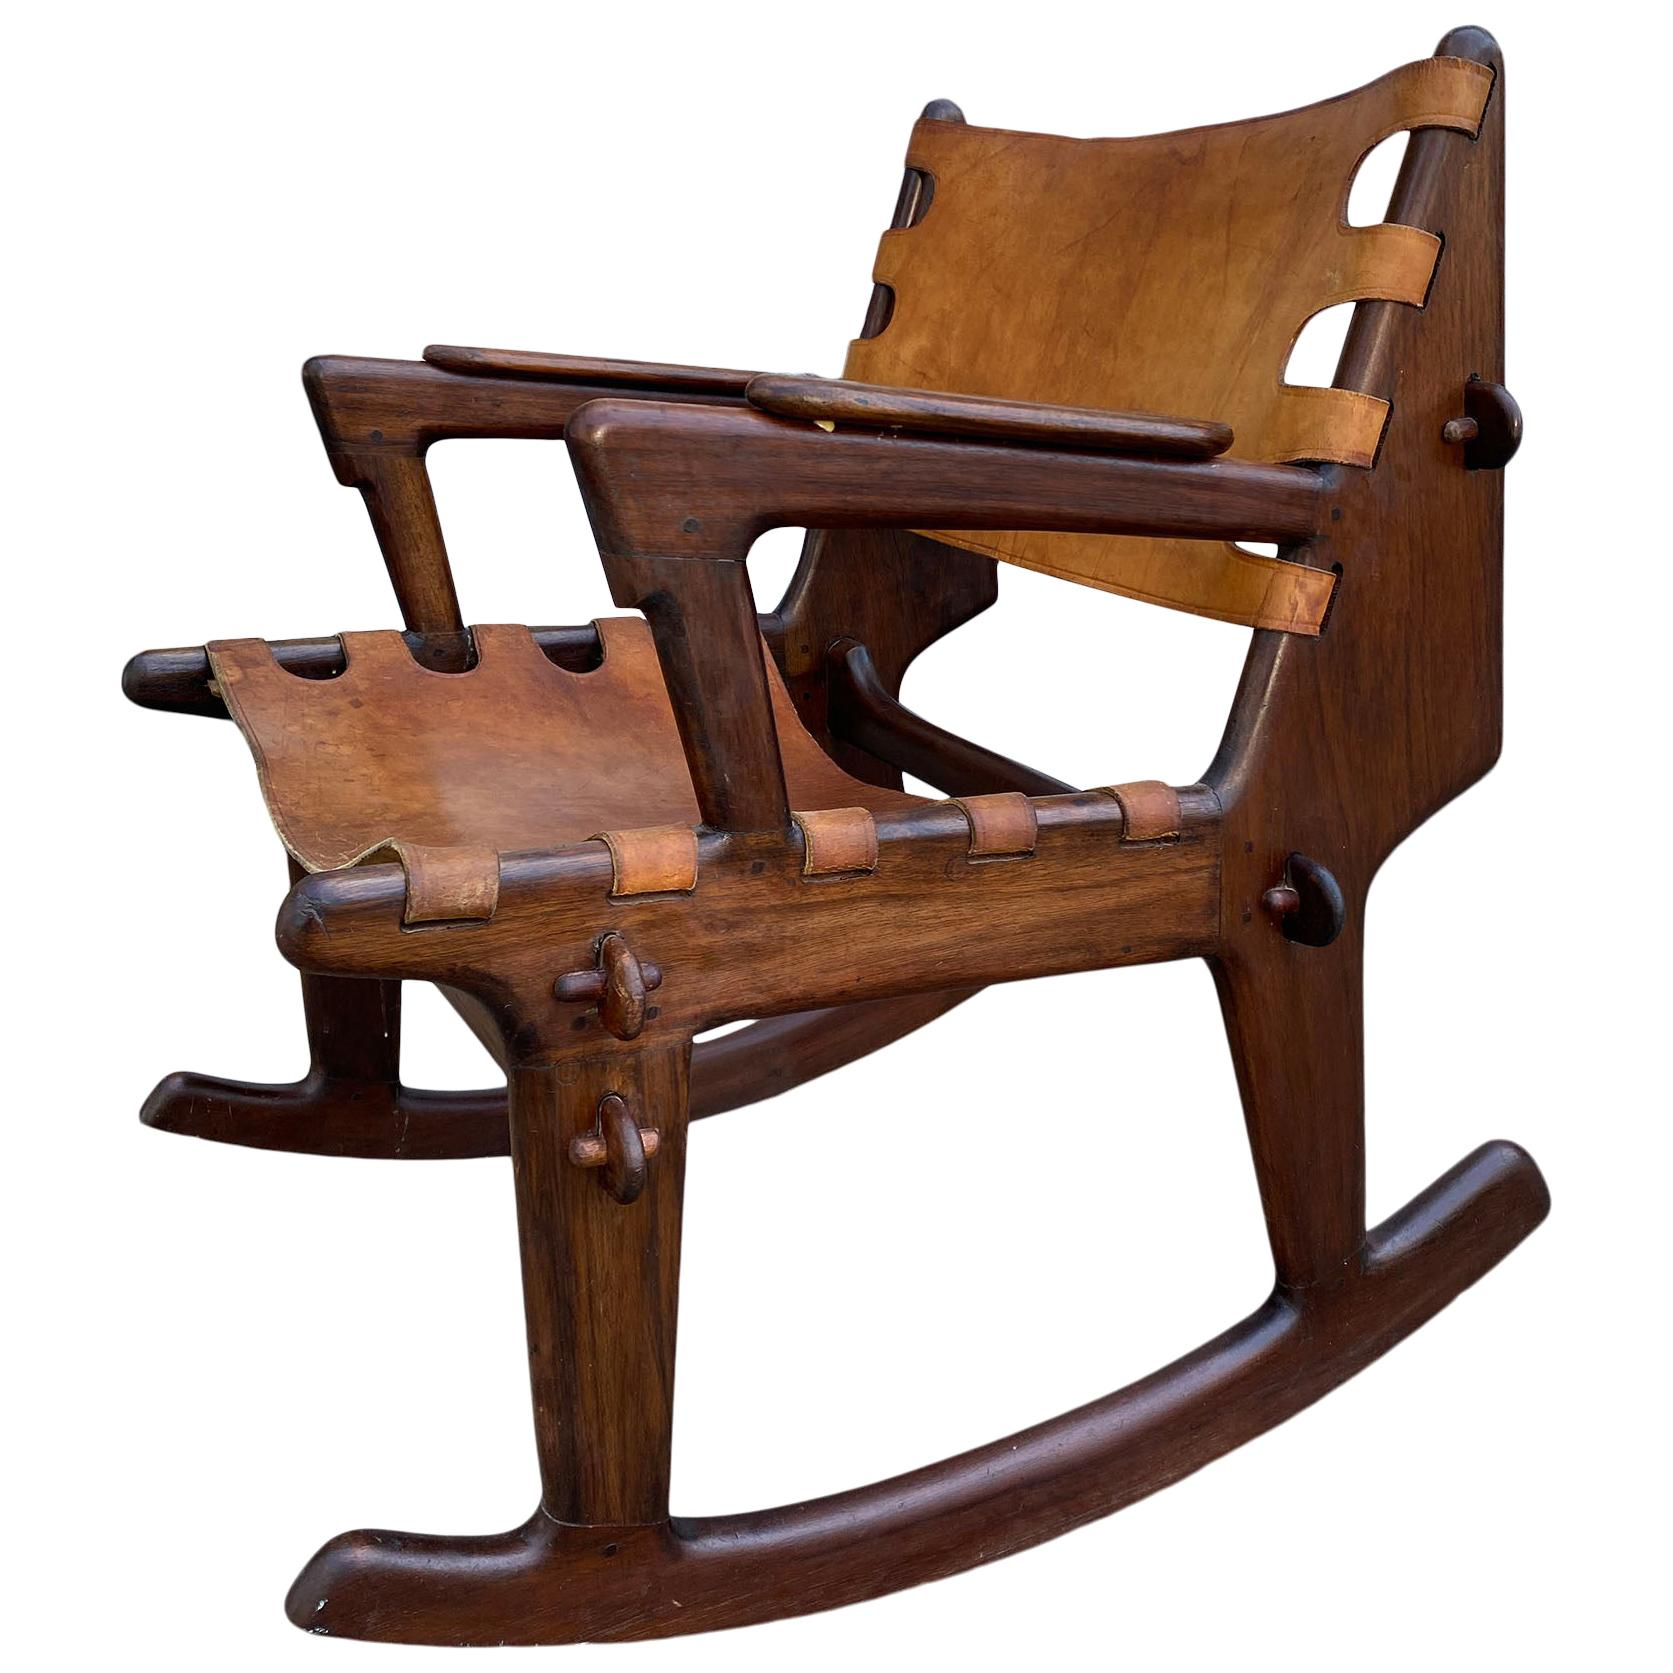 Rose wood and leather sling rocking chair by Ecuadorian designer Angel Pazmino